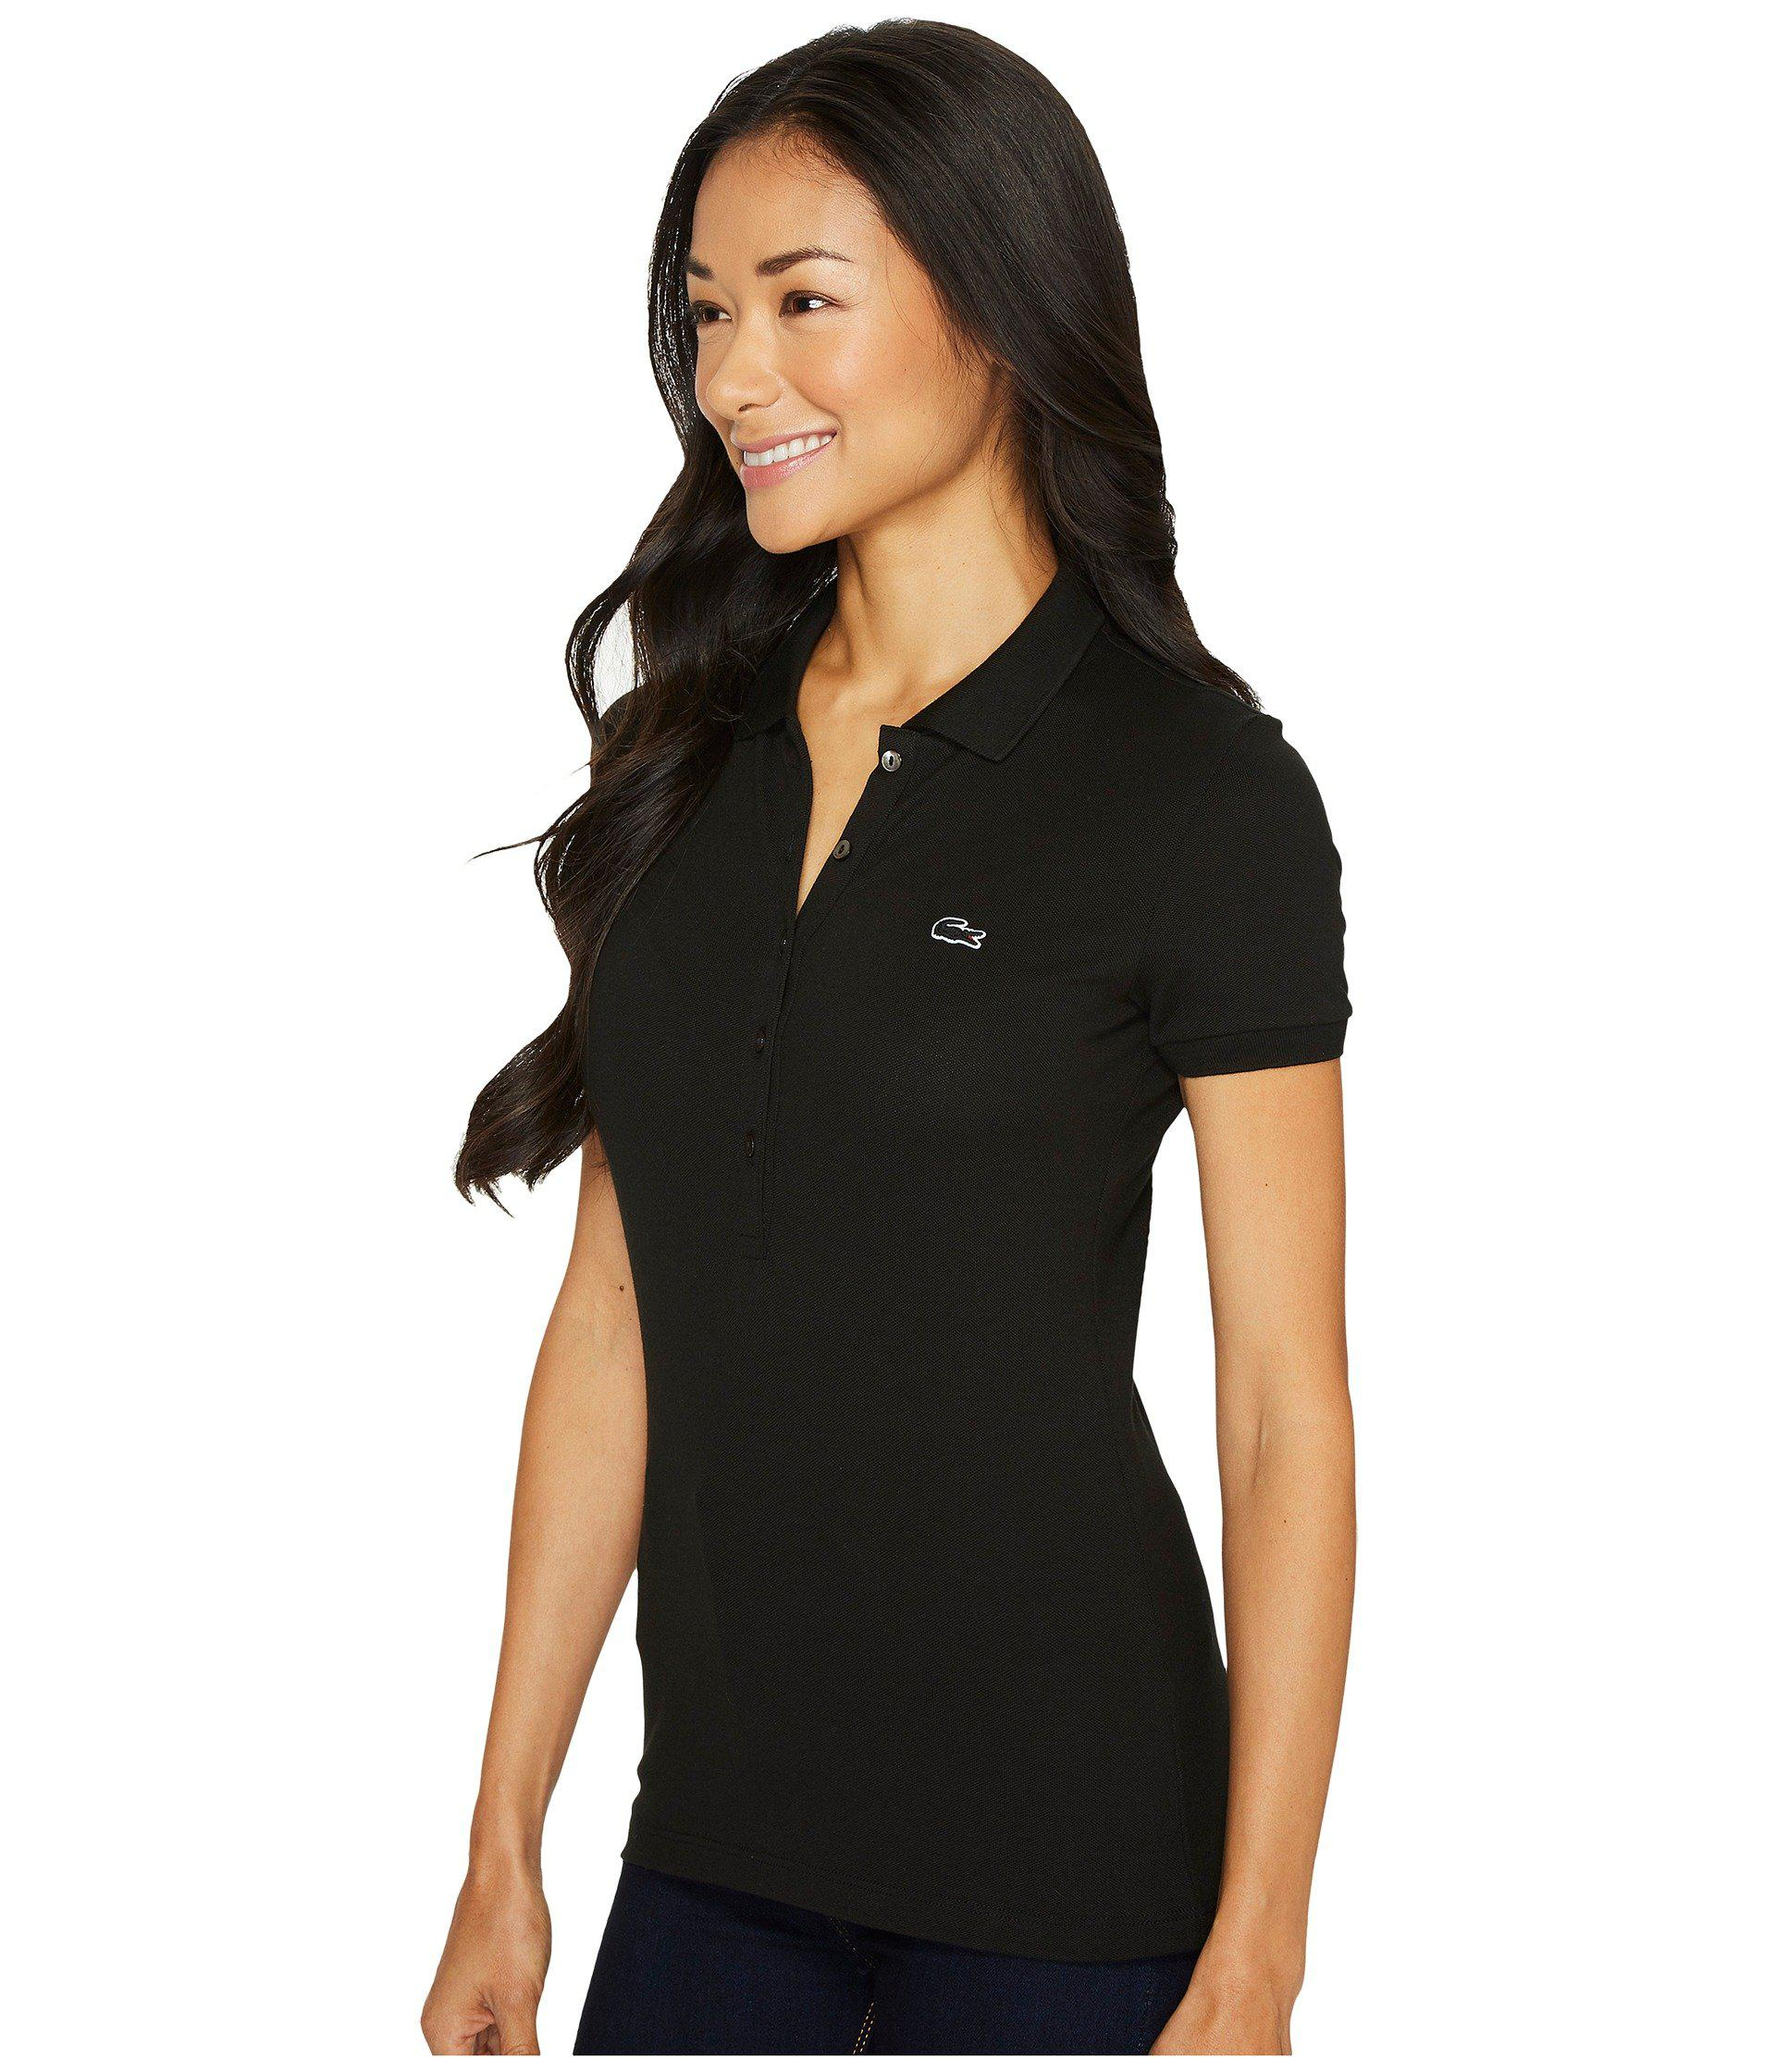 6ff790746a46 Lyst - Lacoste Short Sleeve Slim Fit Stretch Pique Polo Shirt (white)  Women s Clothing in Black